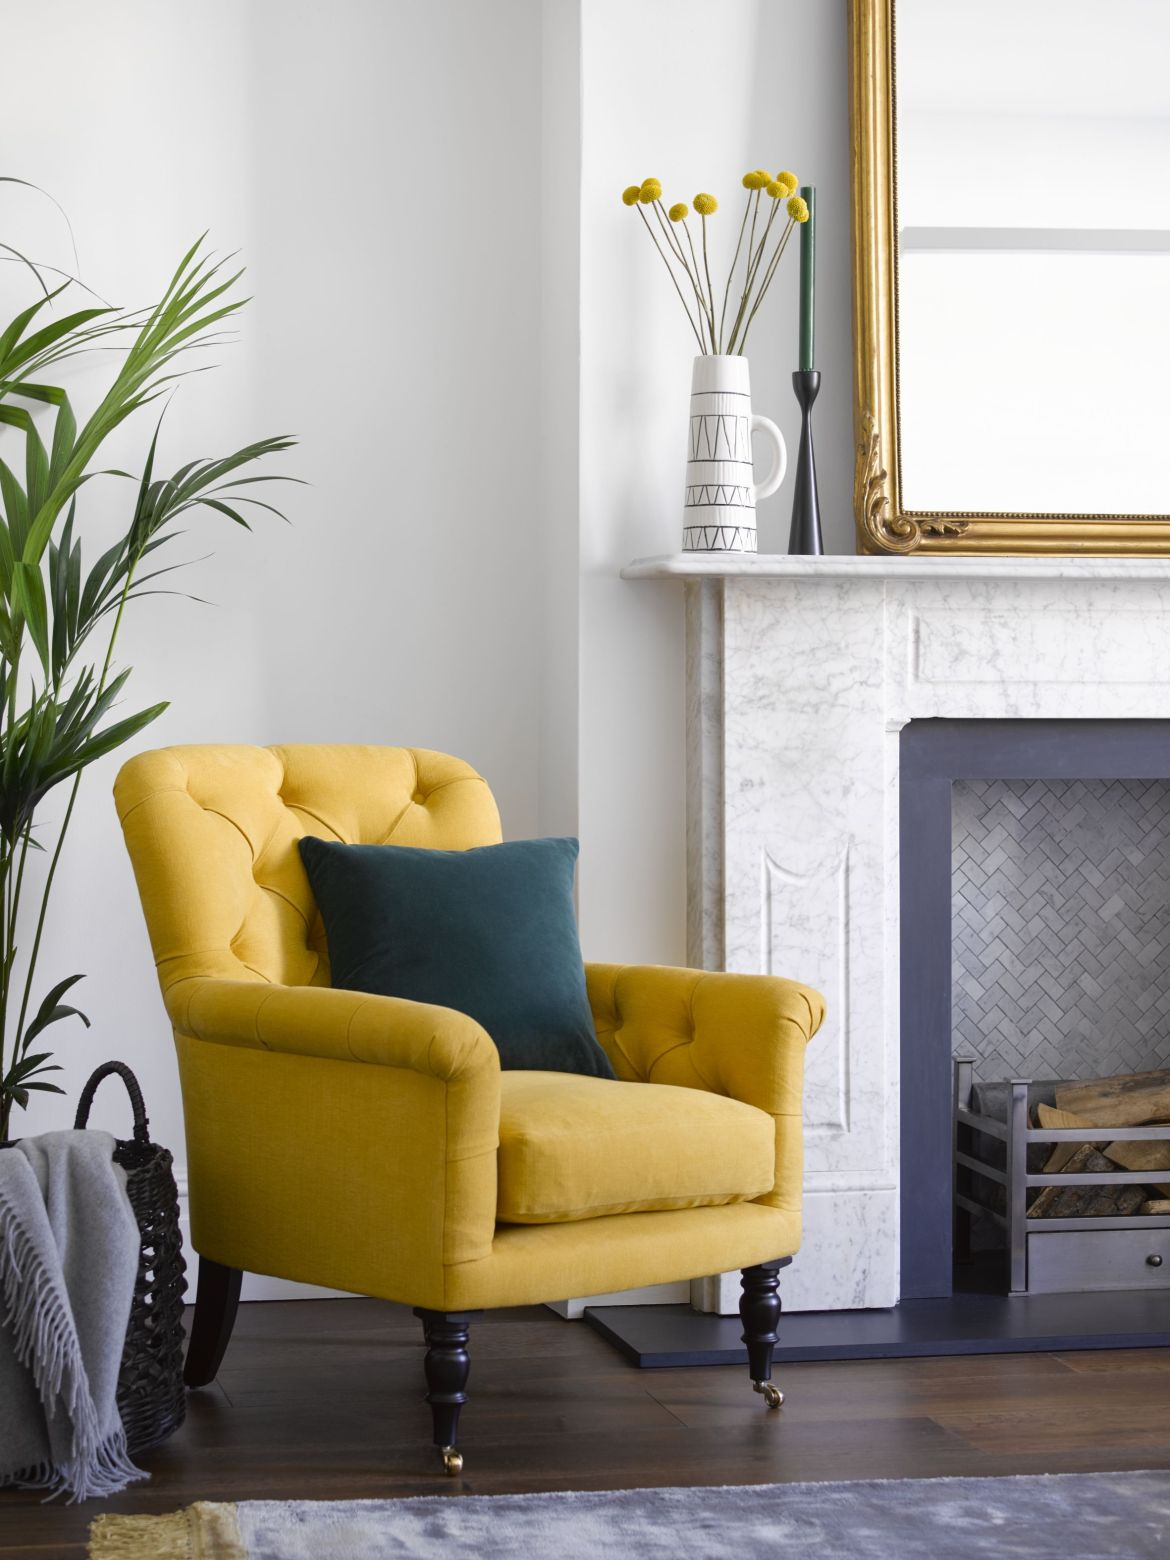 alcove ideas, mustard yellow armchair in nook of living room